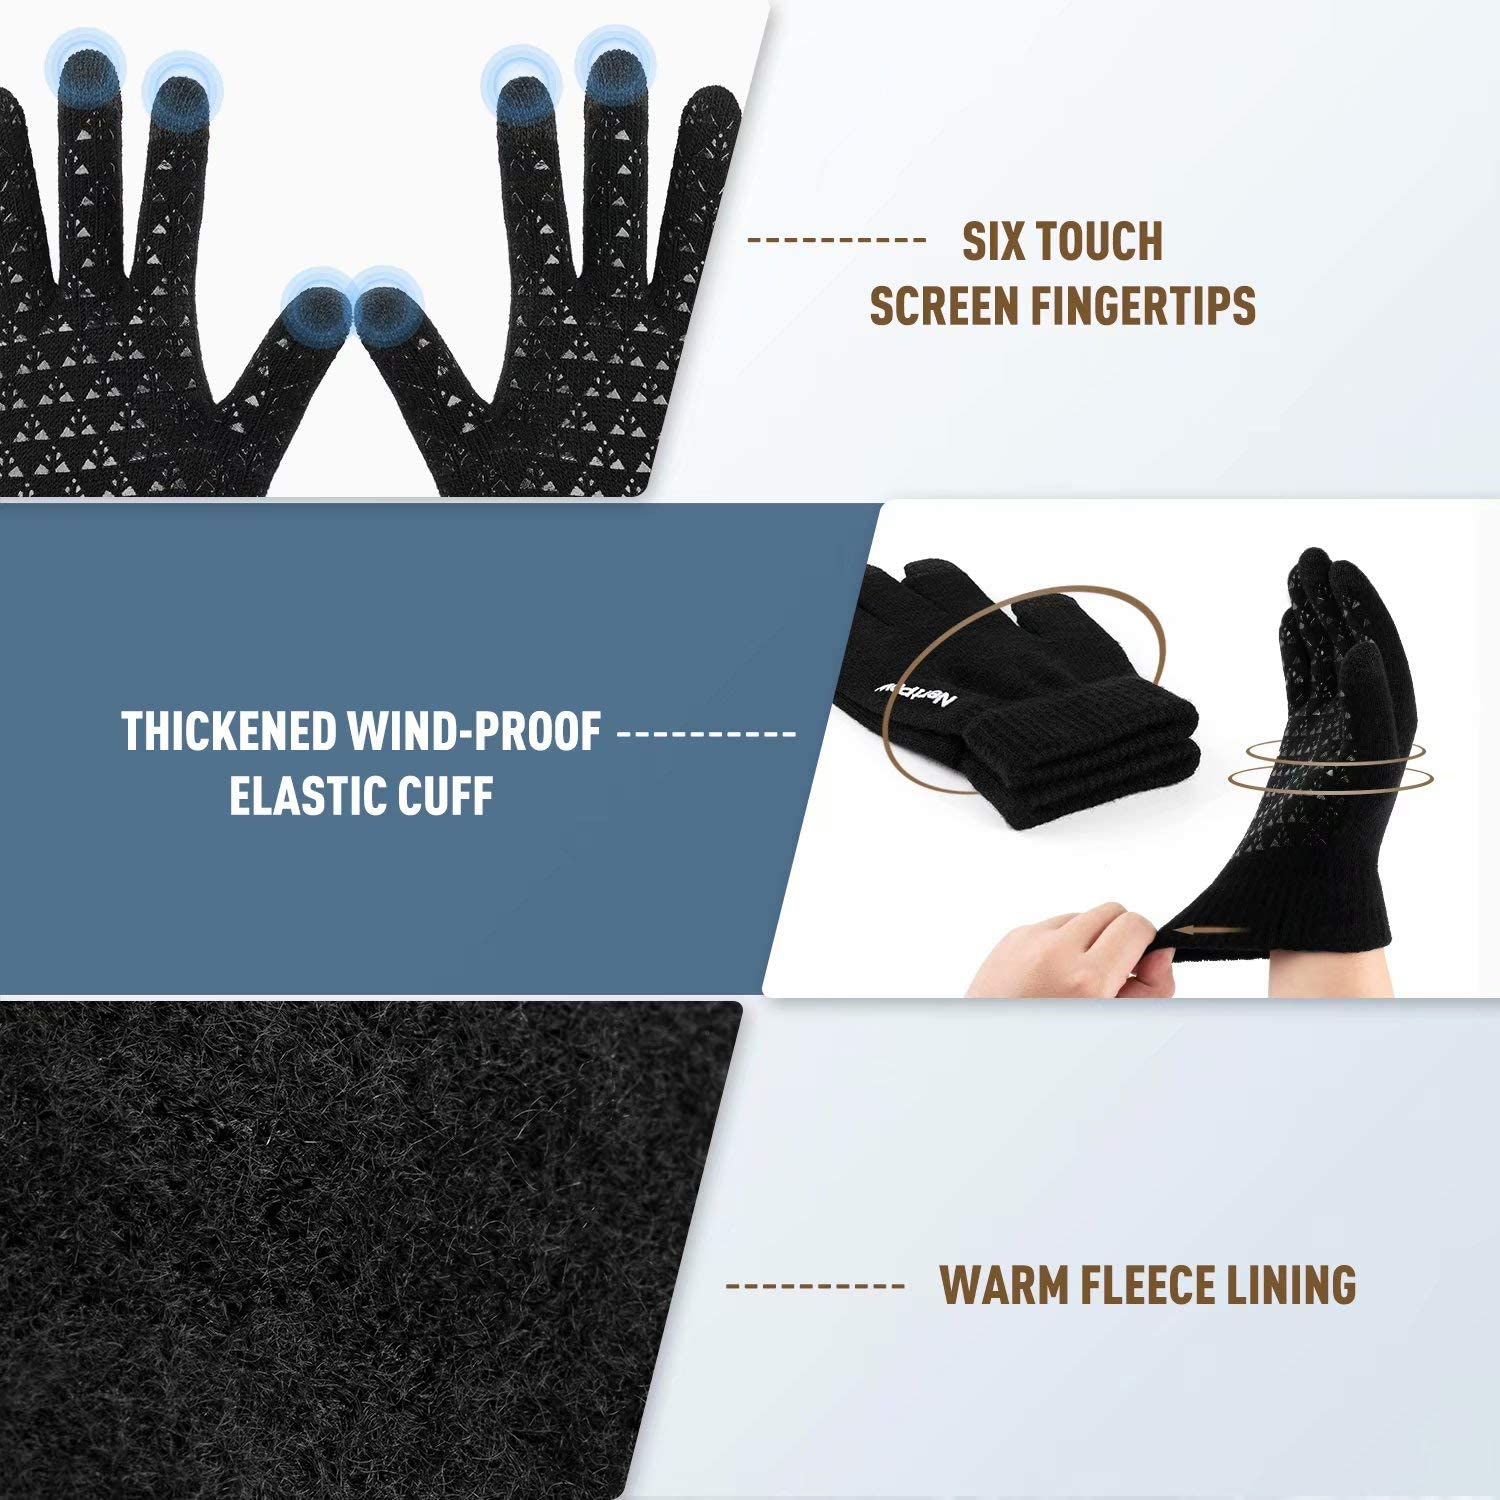 Knit Fleece Lined Warm Touchscreen Gloves Beanie Infitiny Scarf Set Winter 1-3 PCS Beanie Hat Gloves Scarf for Men and Women